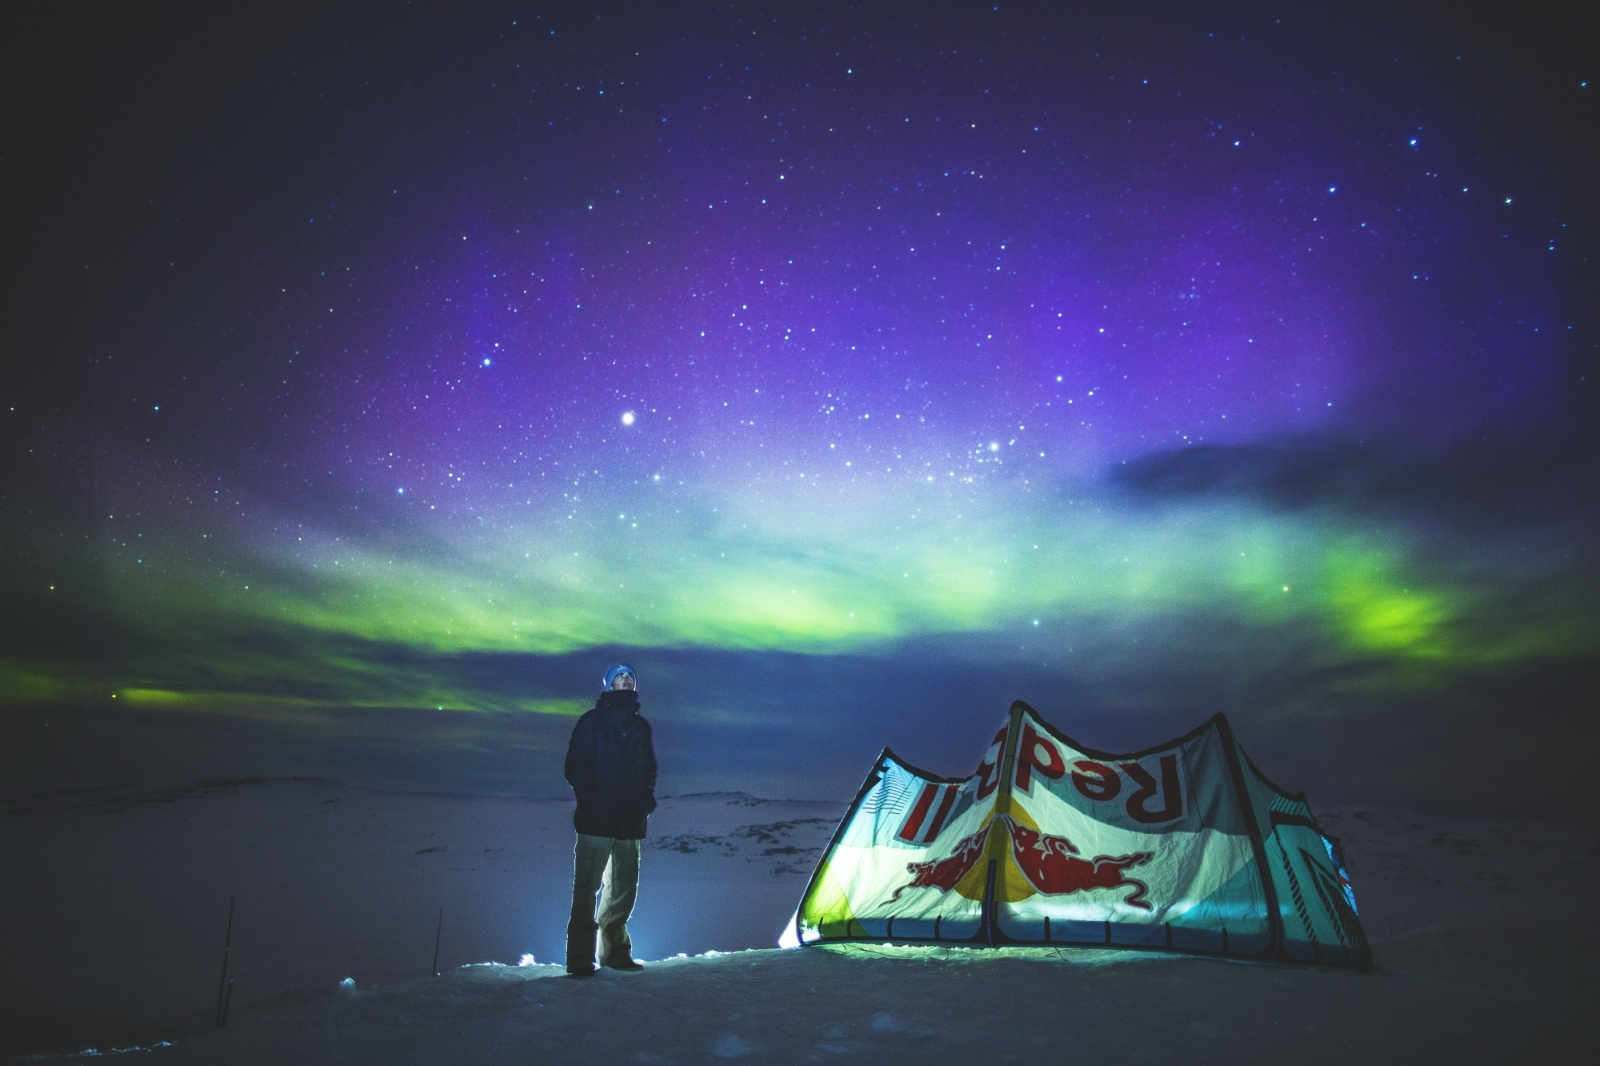 6. Norway: Visa-Free Access Score: 185. While people around the world flock to Norway to catch a glimpse of the Northern Lights, Norwegian themselves can travel to 185 destinations visa-free.